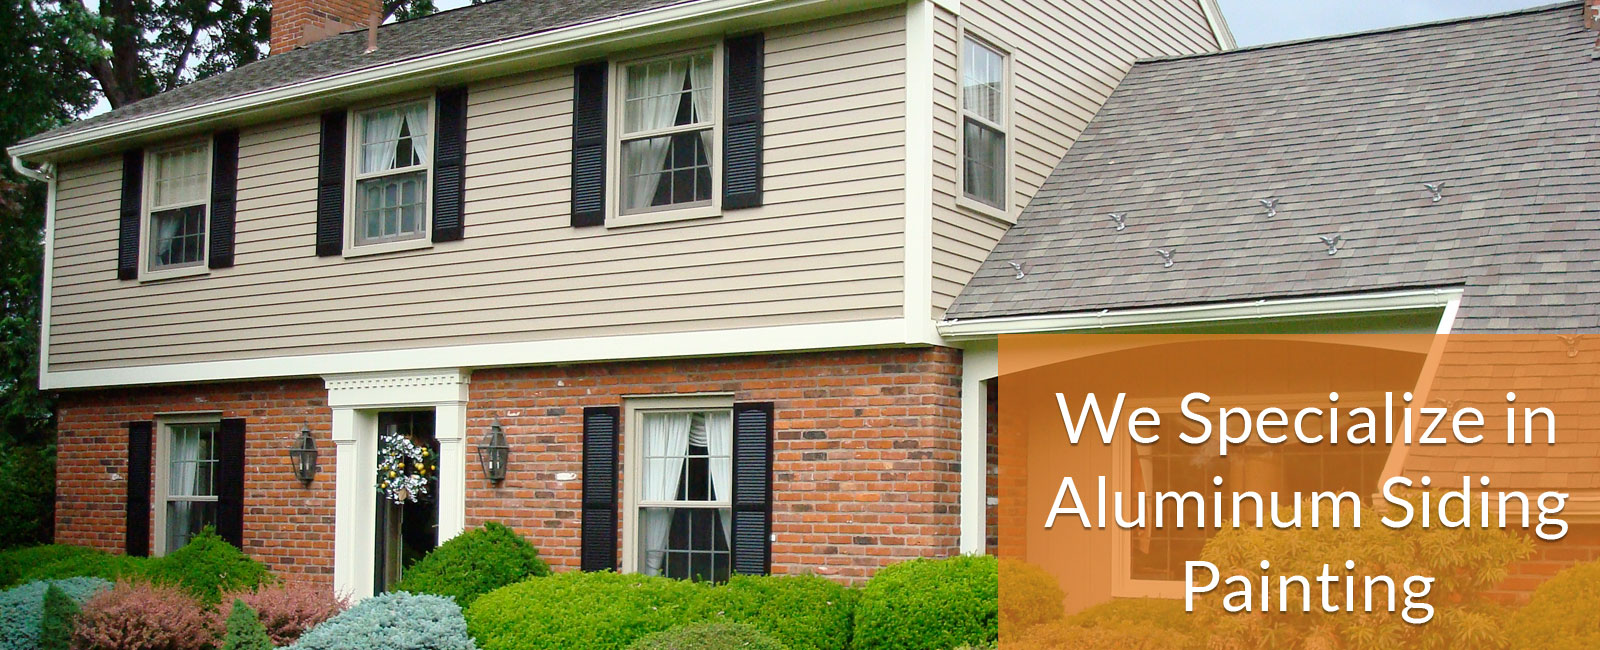 We specialize in painting aluminum siding